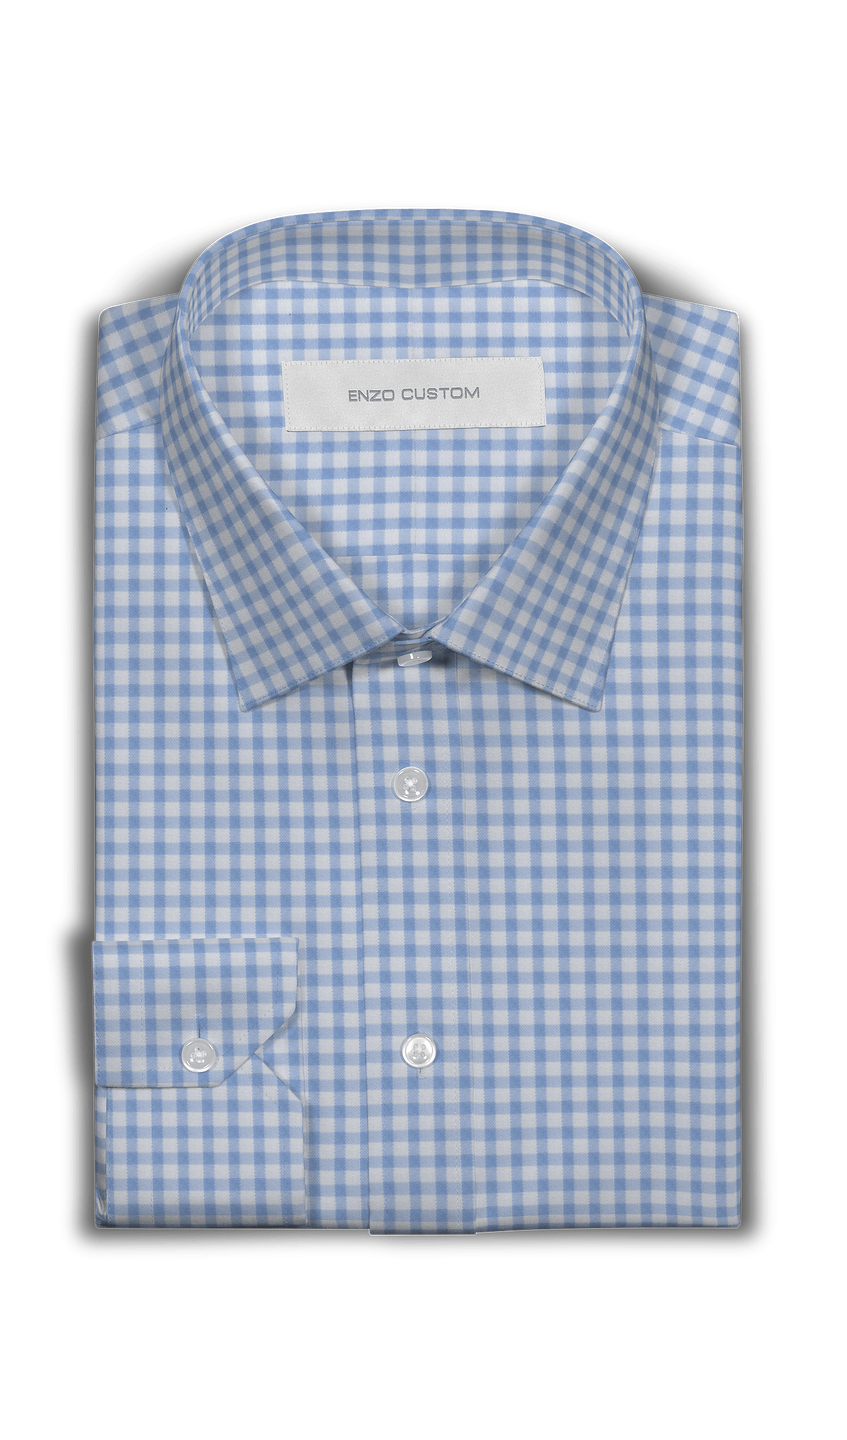 Signature Shirt White/Blue Check Cotton Dress Shirt